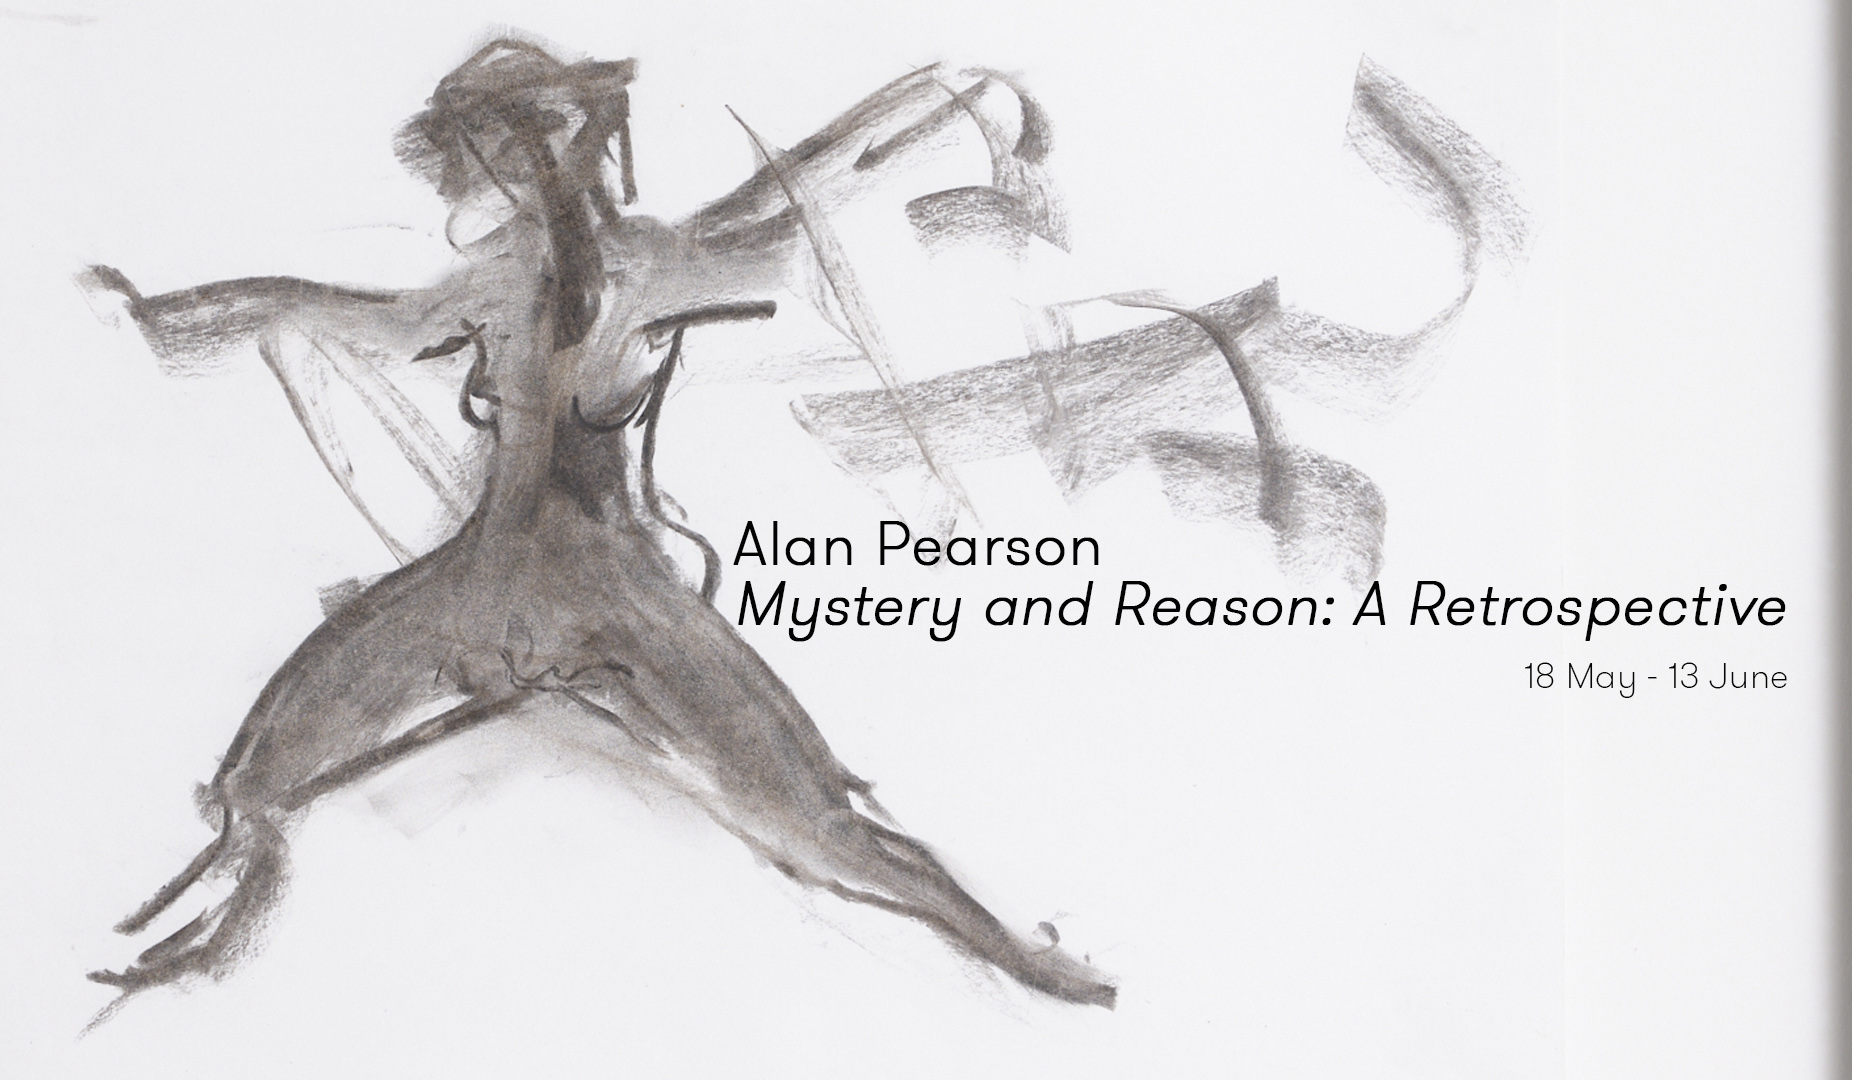 Mystery and Reason: A Retrospective